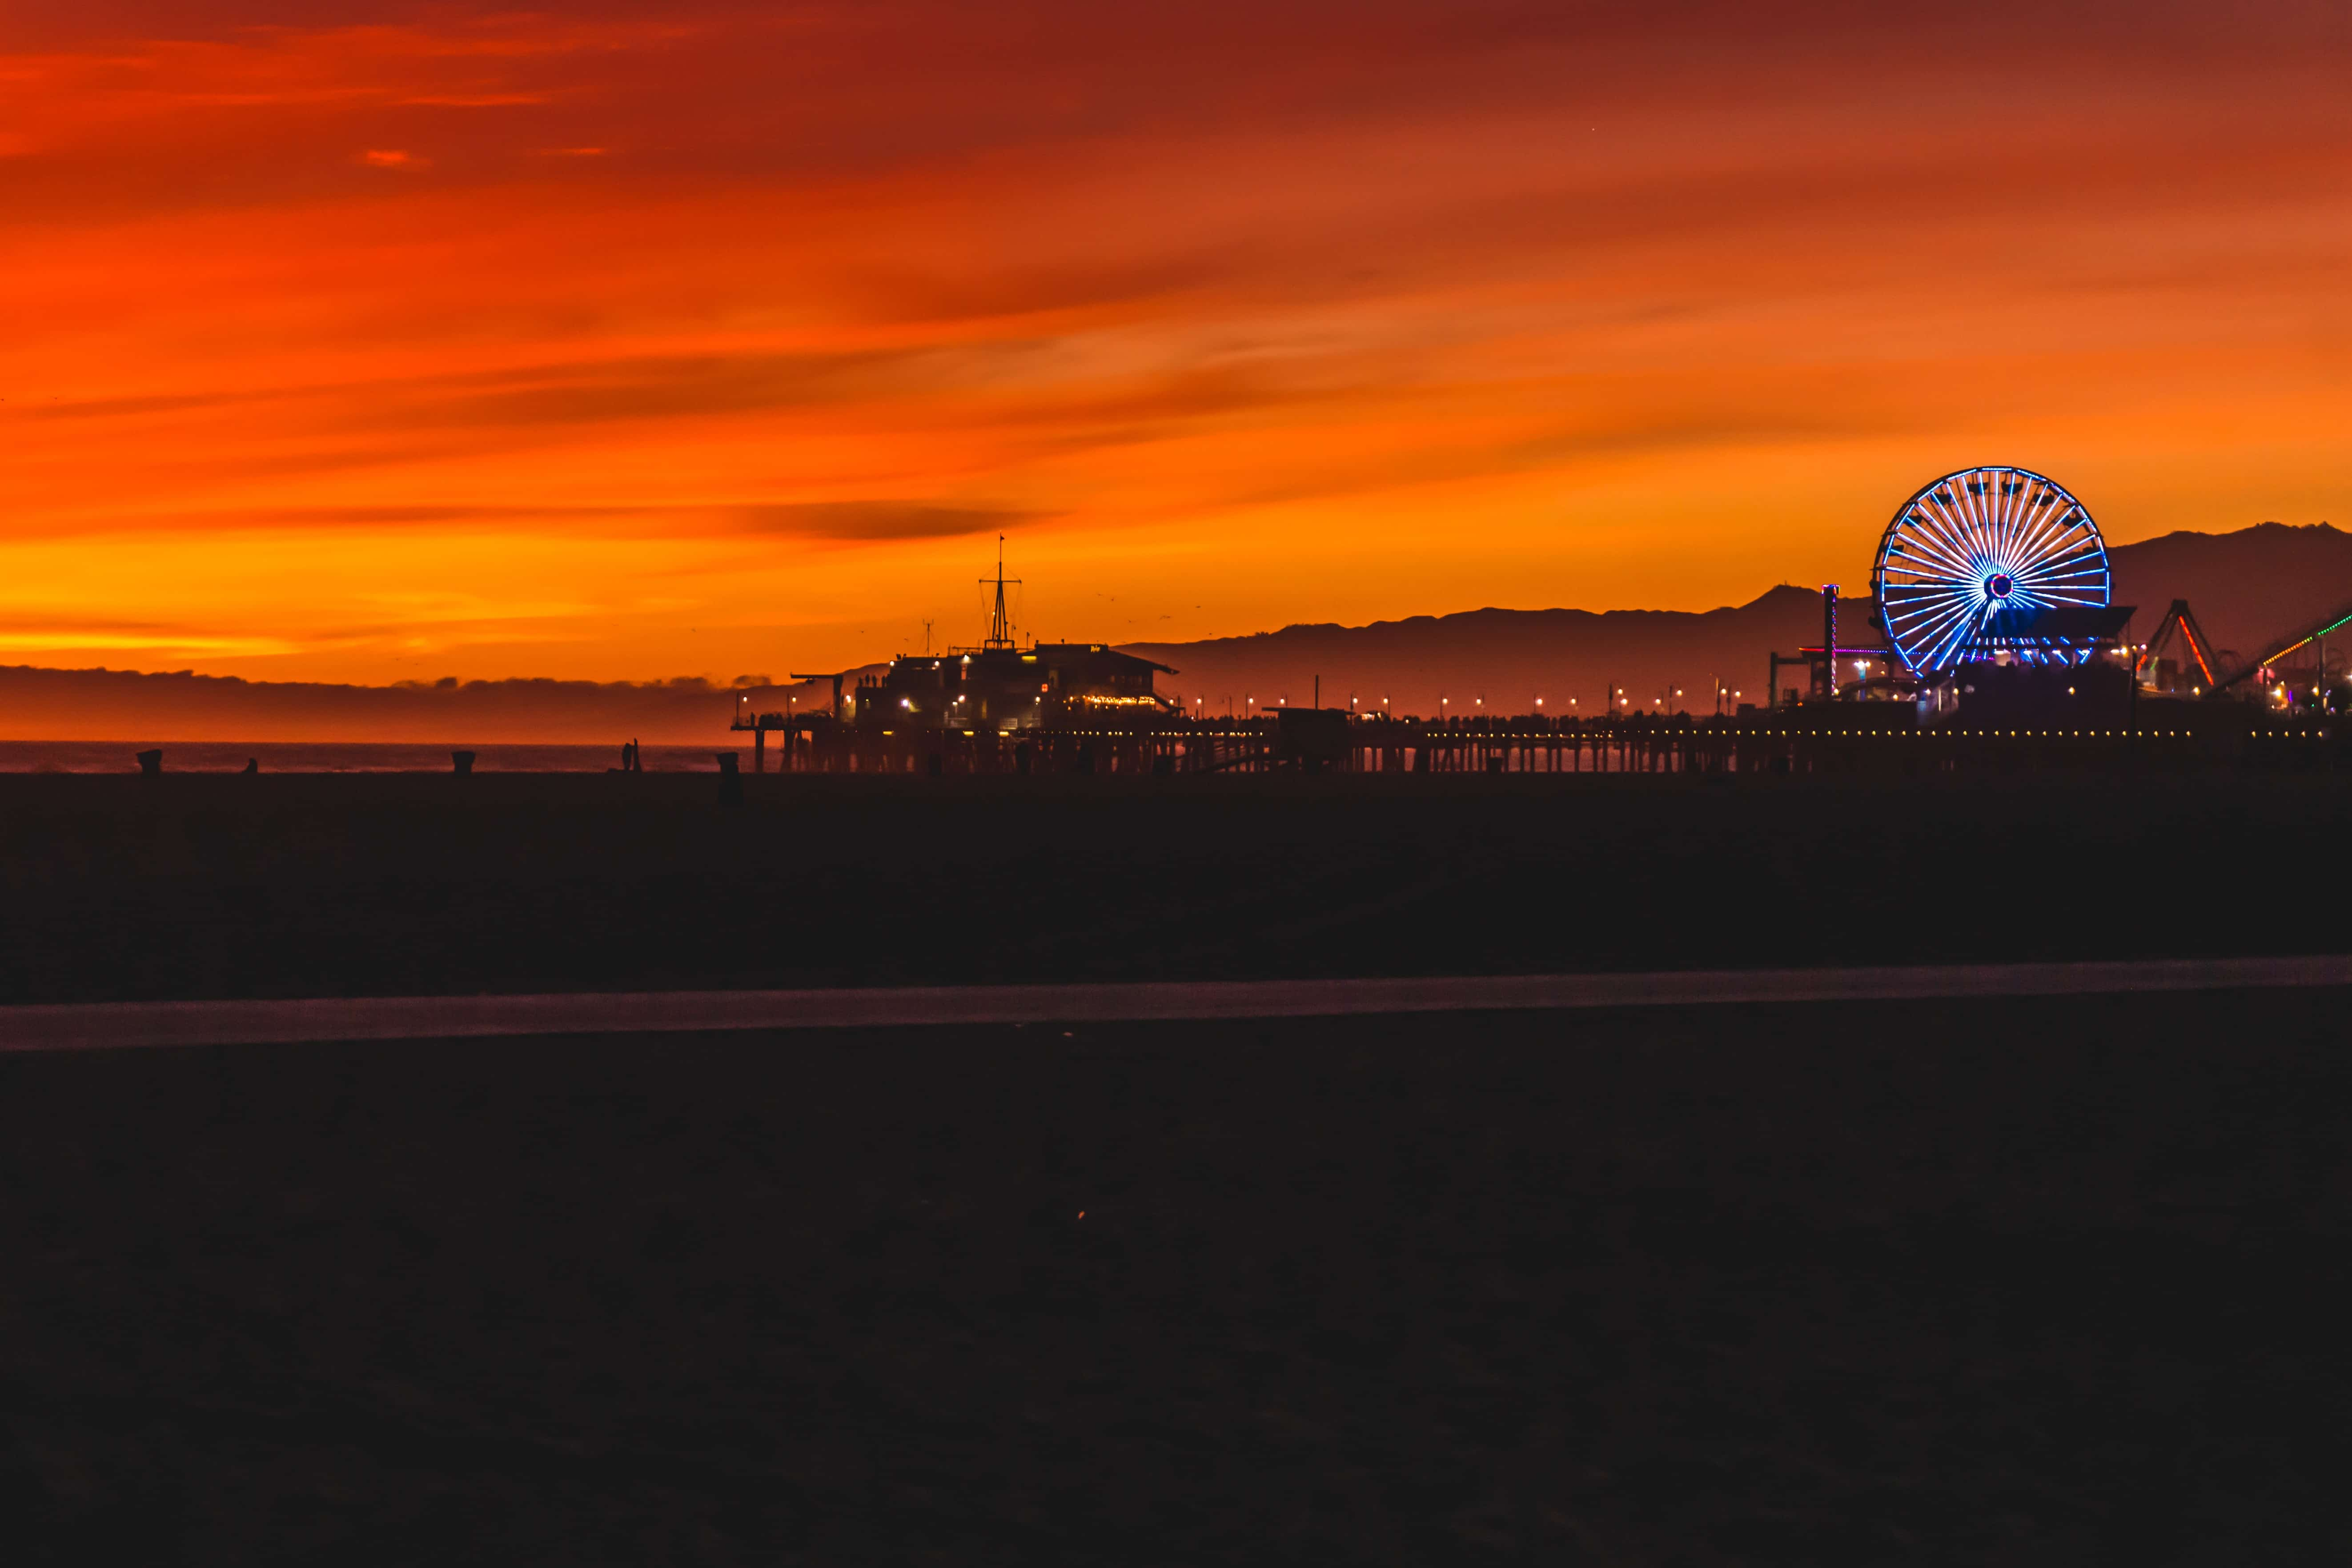 Santa Monica Pier at the golden hour